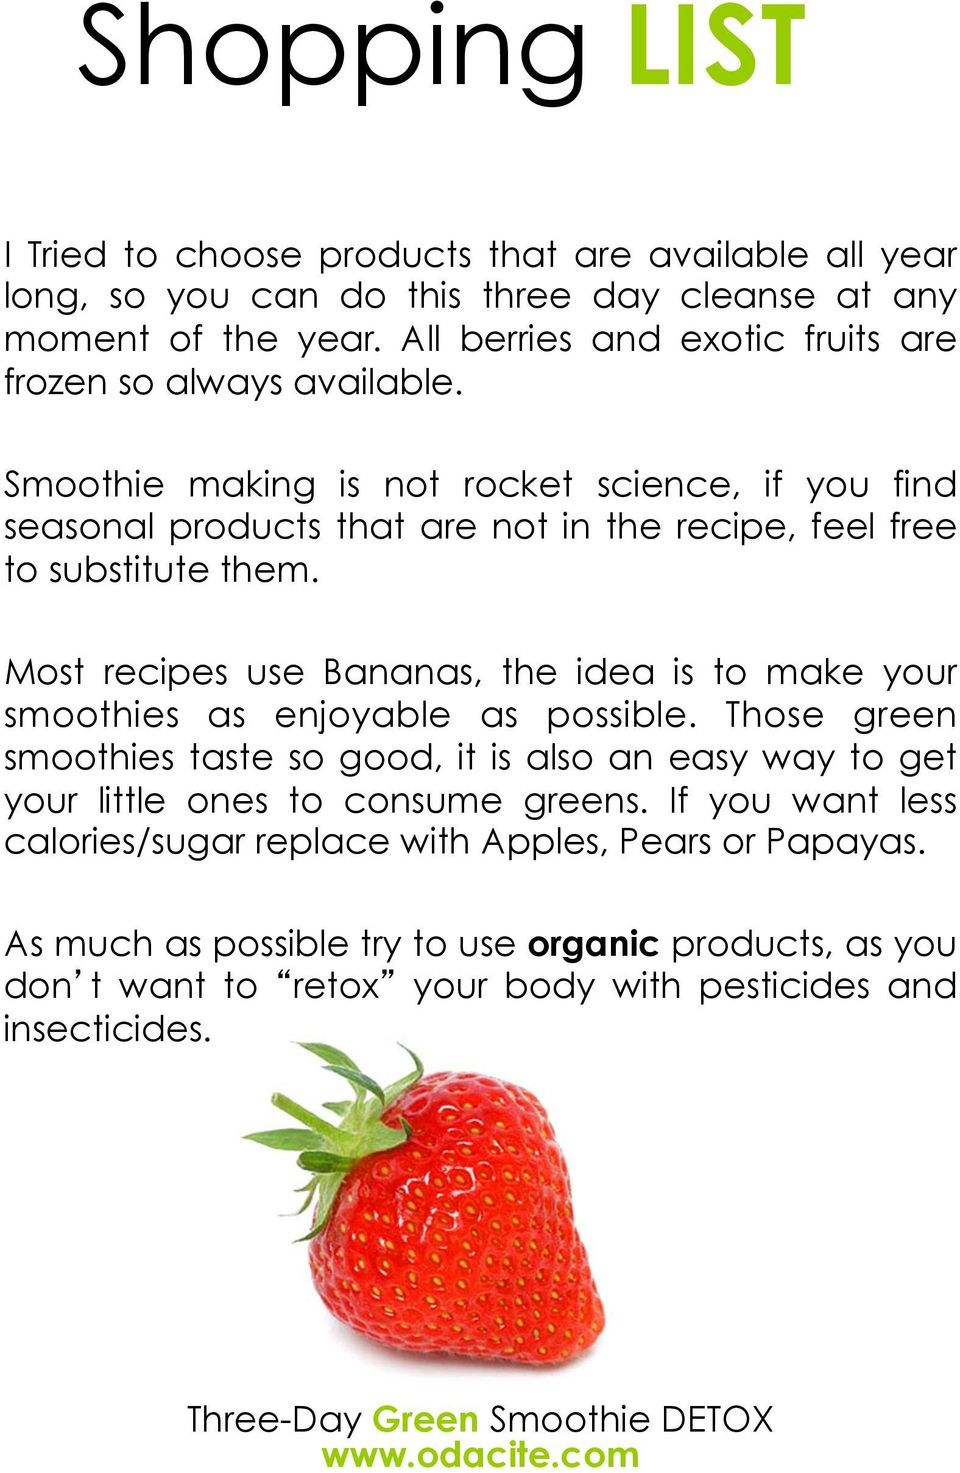 Smoothie making is not rocket science, if you find seasonal products that are not in the recipe, feel free to substitute them.